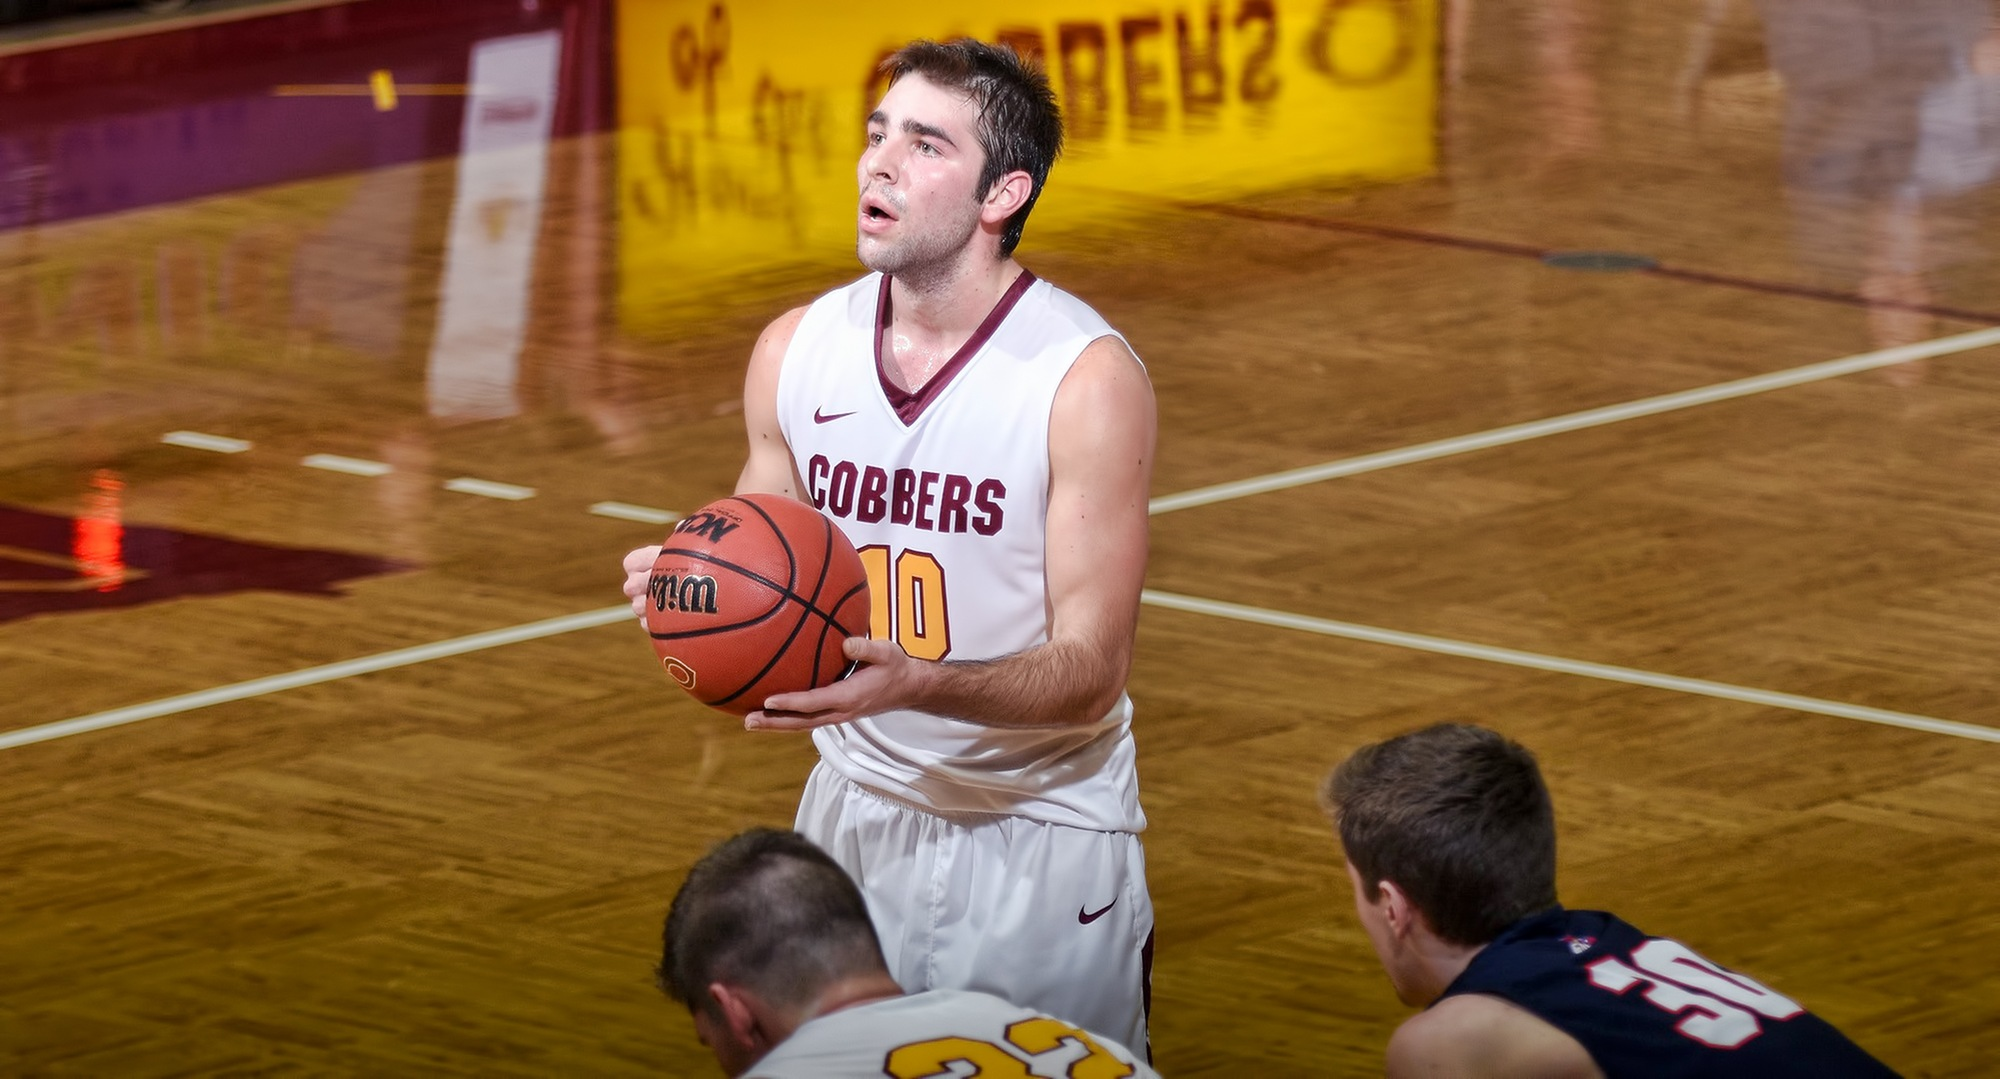 Senior Tommy Schyma gets ready to drain a free throw during the second half of the Cobbers' Senior Celebration Day against St. Mary's. Schyma finished with 25 points and 10 rebounds in his first game back since Dec. 14.